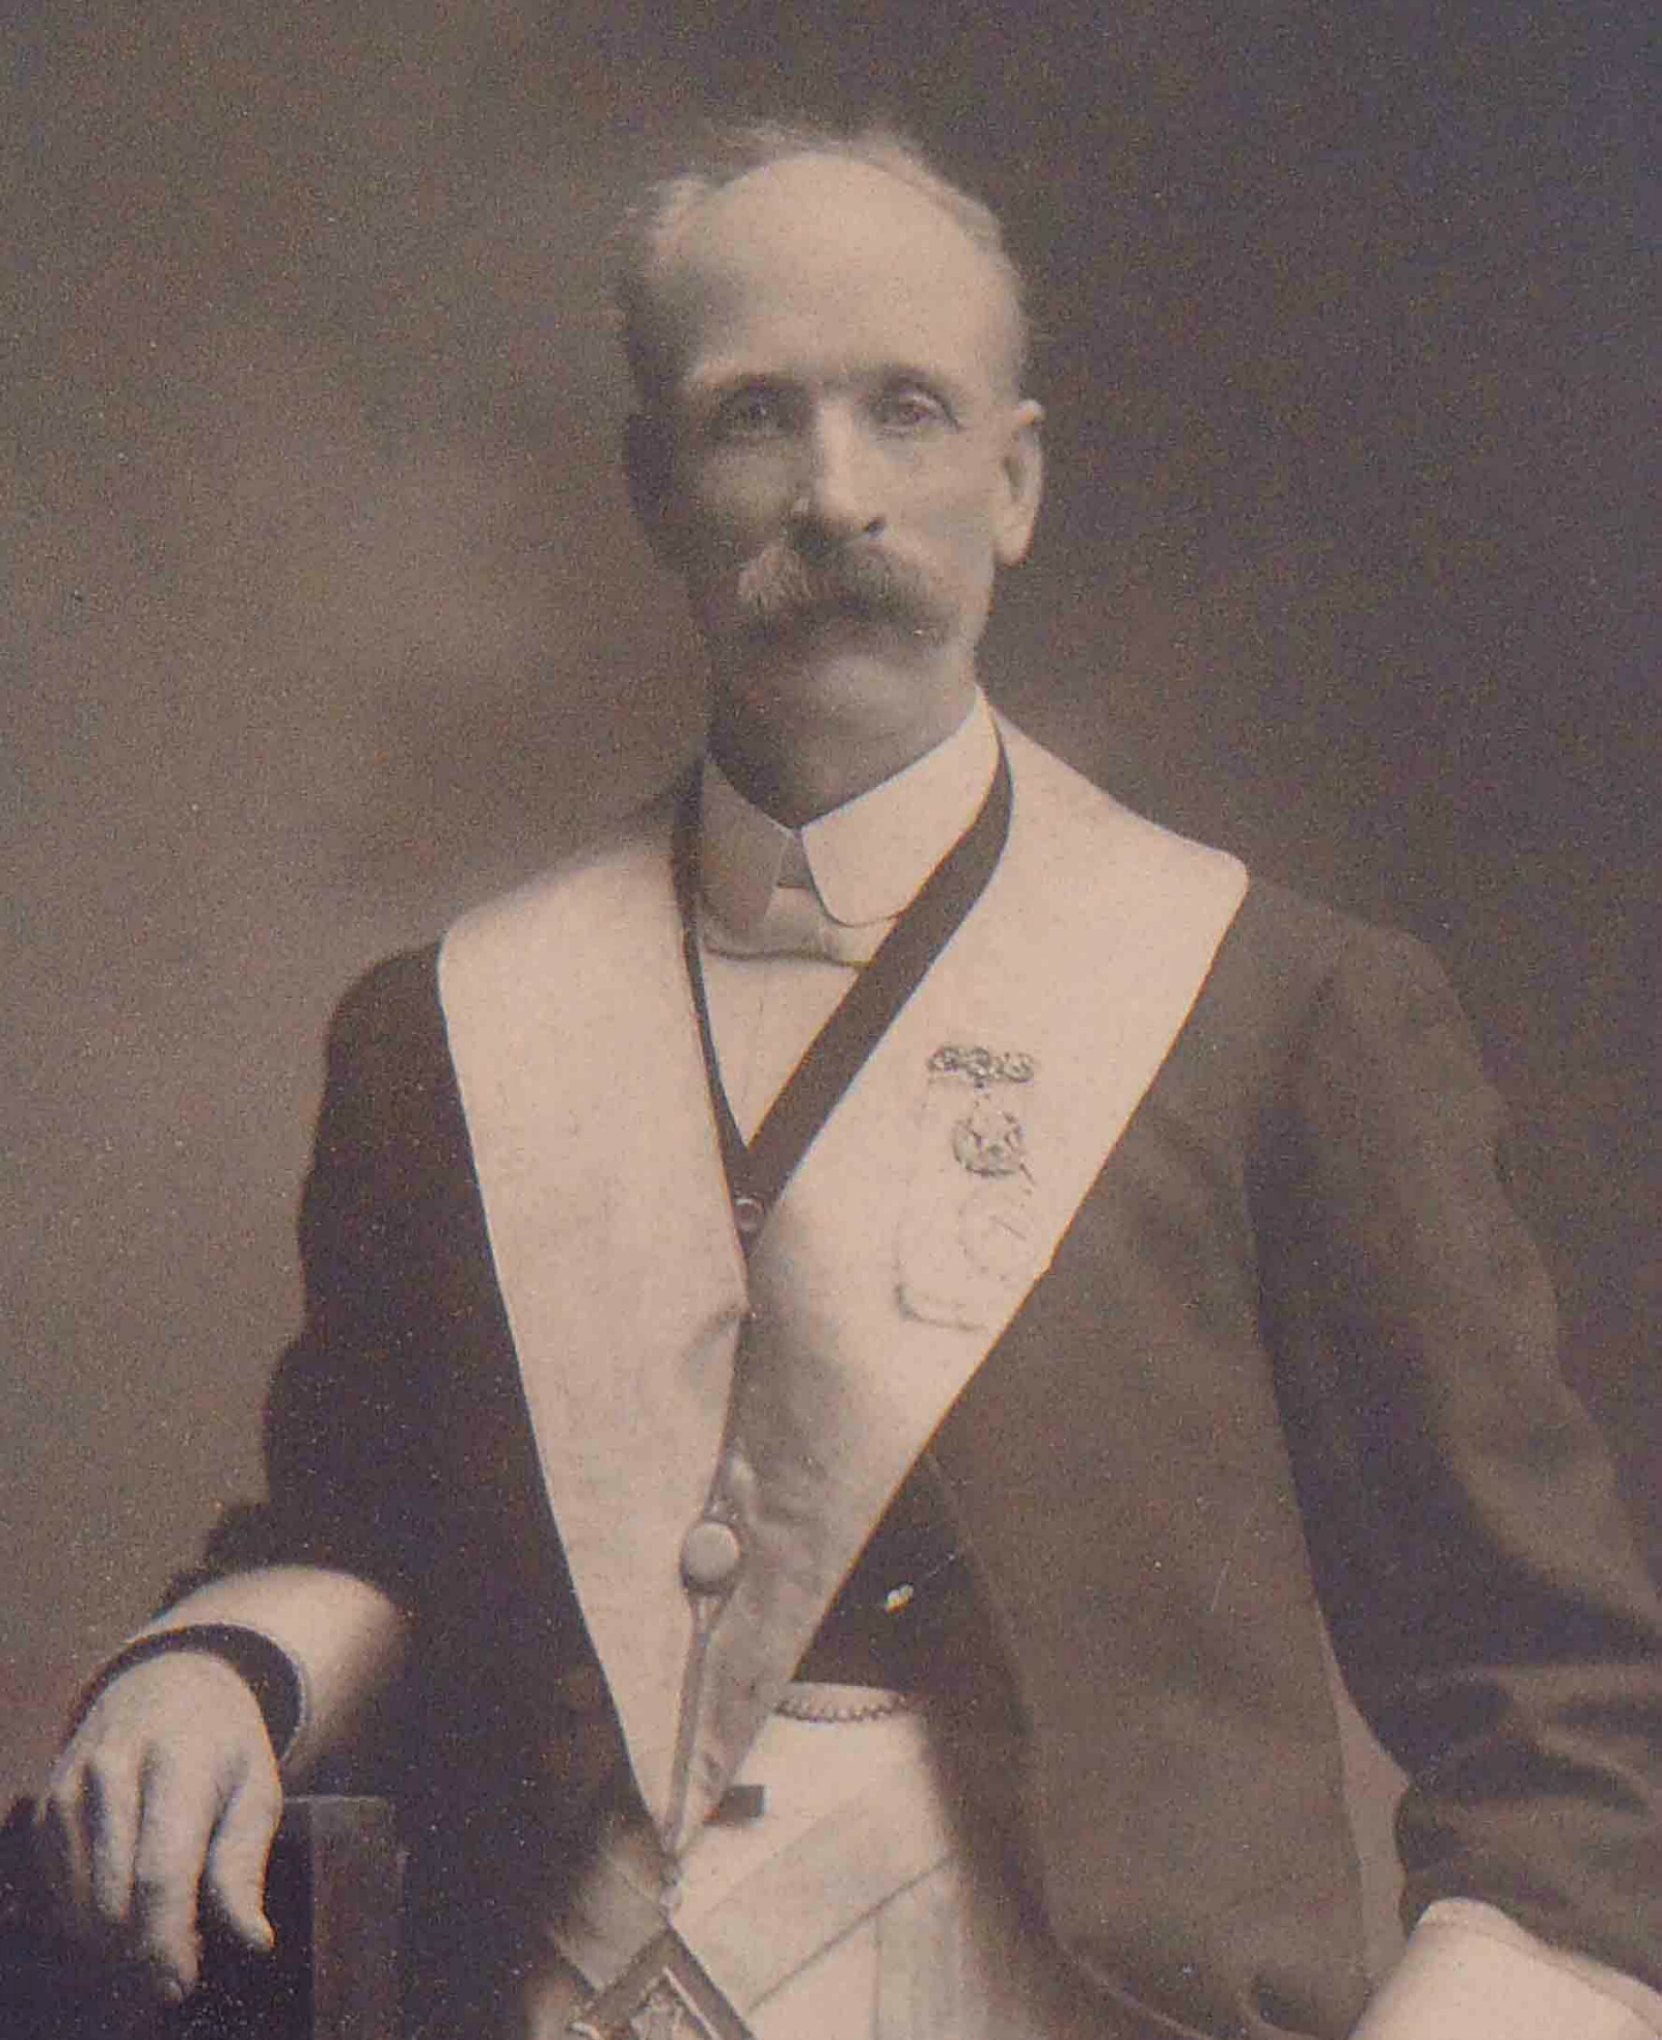 Samuel Robinson, Worshipful Master of Temple Lodge, No.33 in 1902